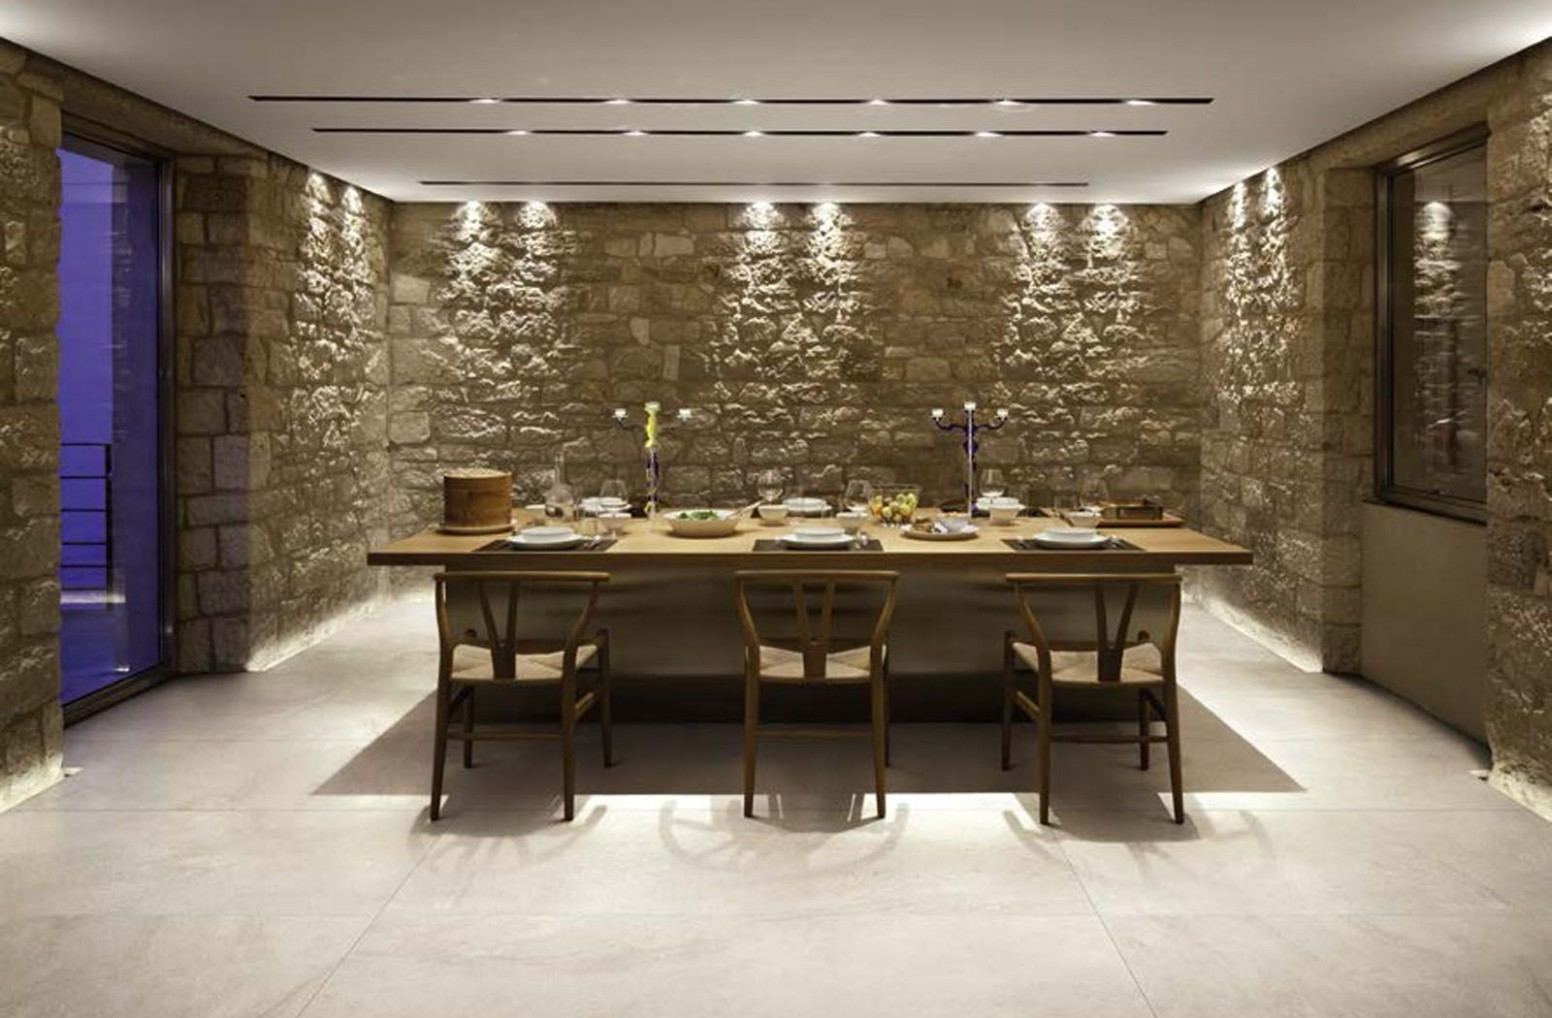 Traditional dining room decor with Styletech tiles from Florim  - Dining Room Tile Ideas